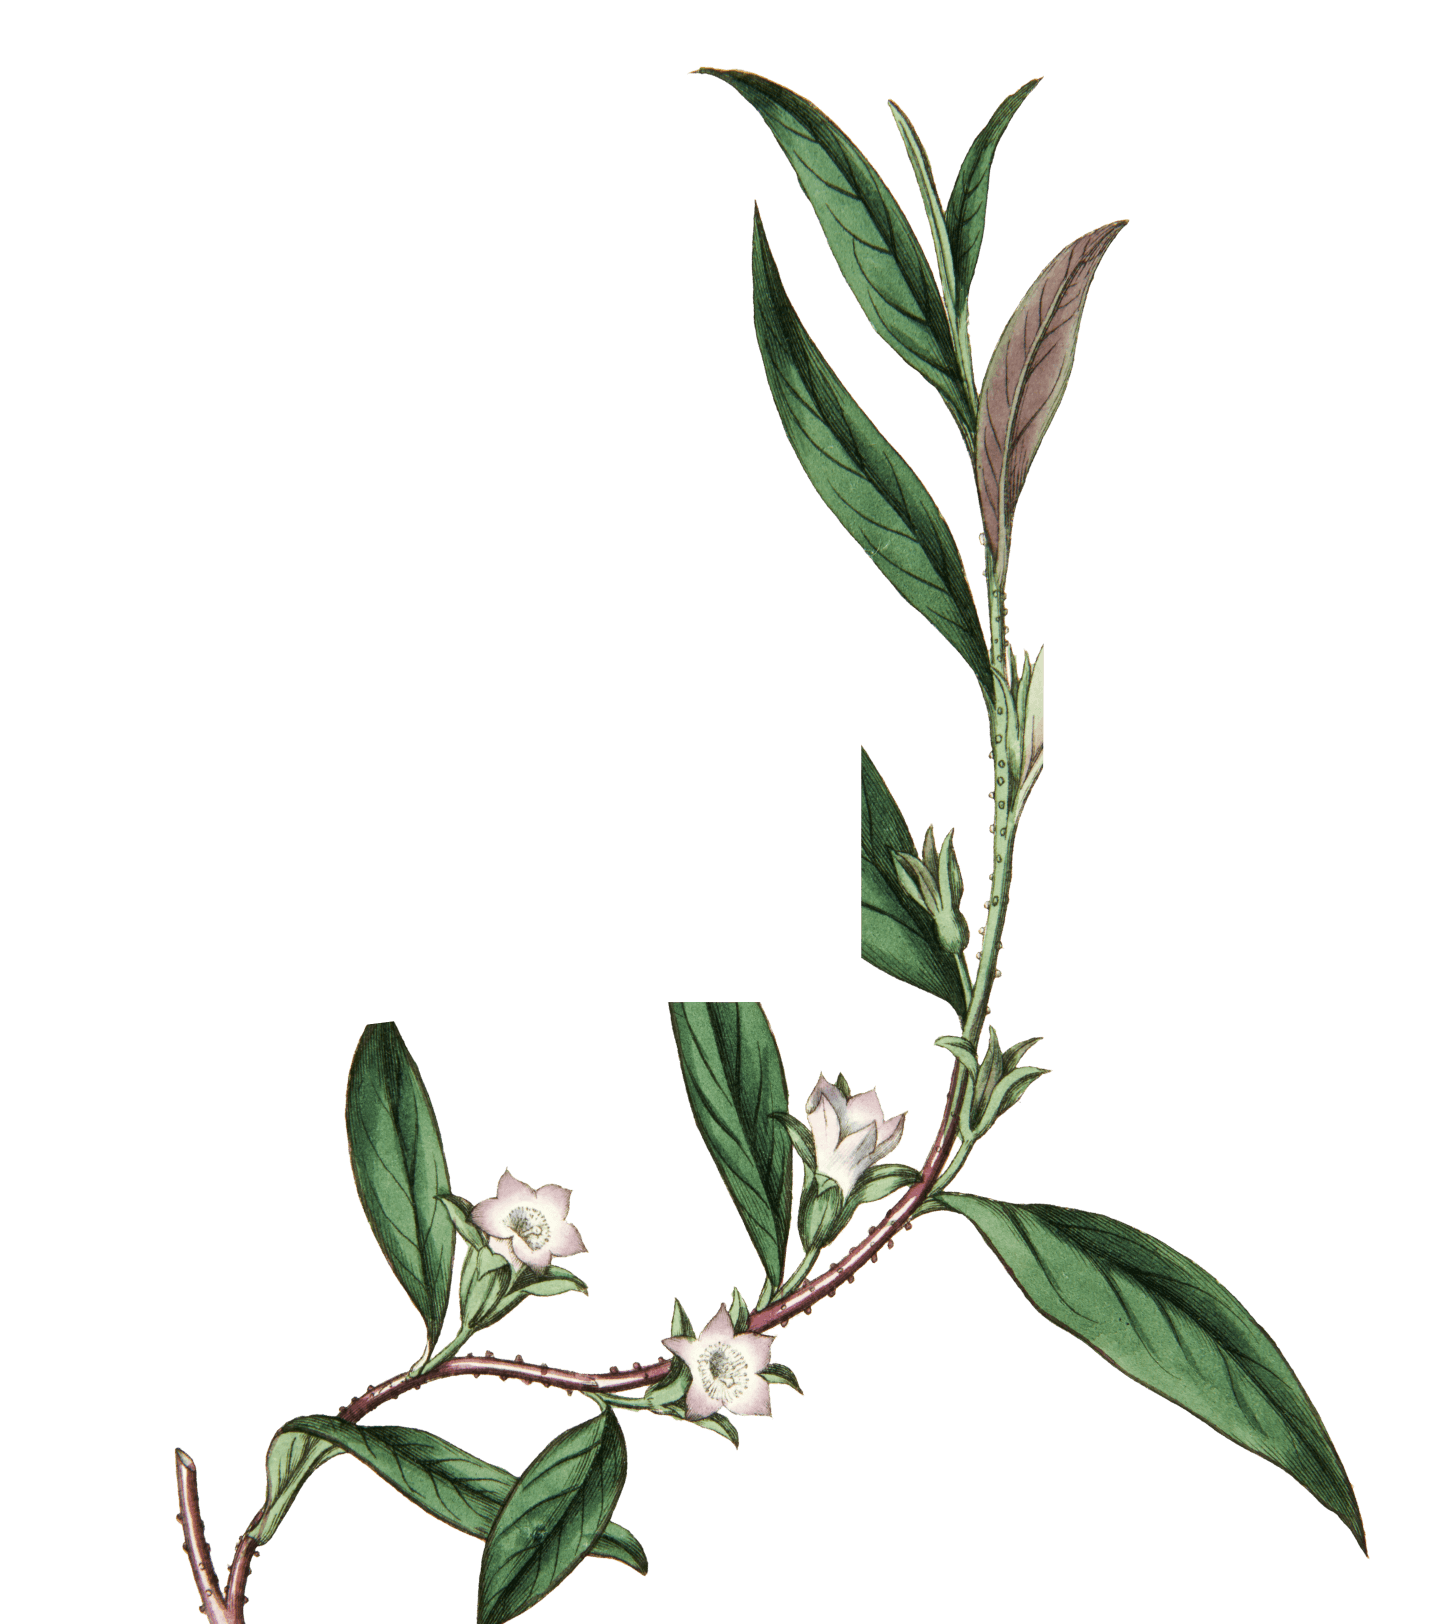 Decorative botanical image